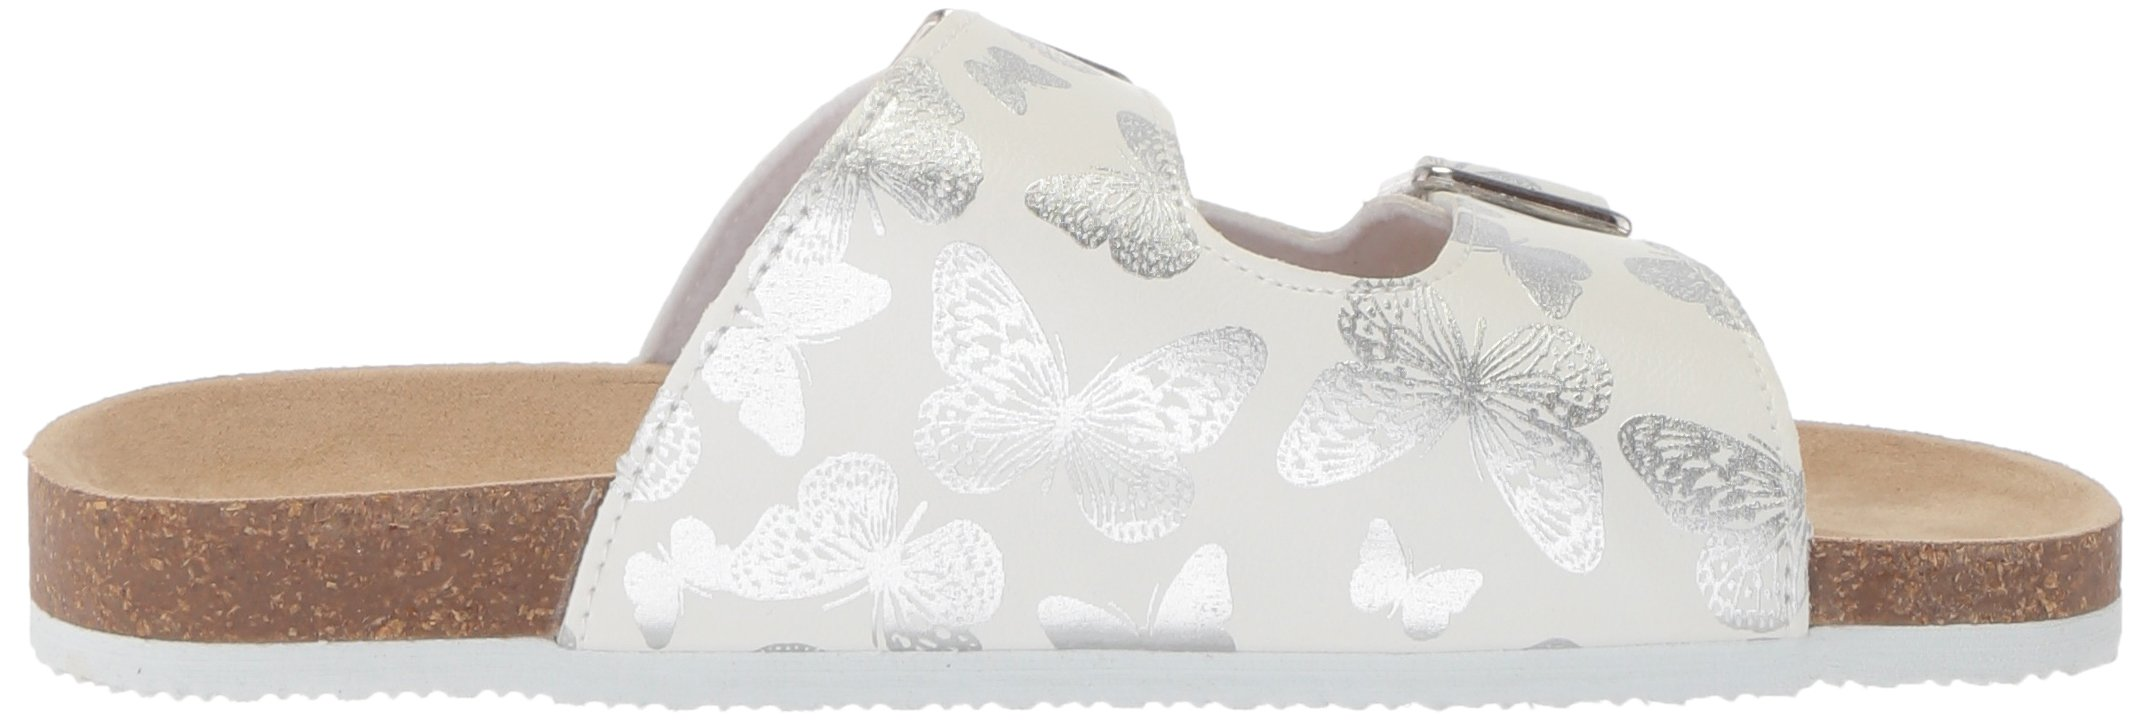 The Children's Place Girls' BG Butterfly LUN Flat Sandal, White, Youth 11 Medium US Big Kid by The Children's Place (Image #6)